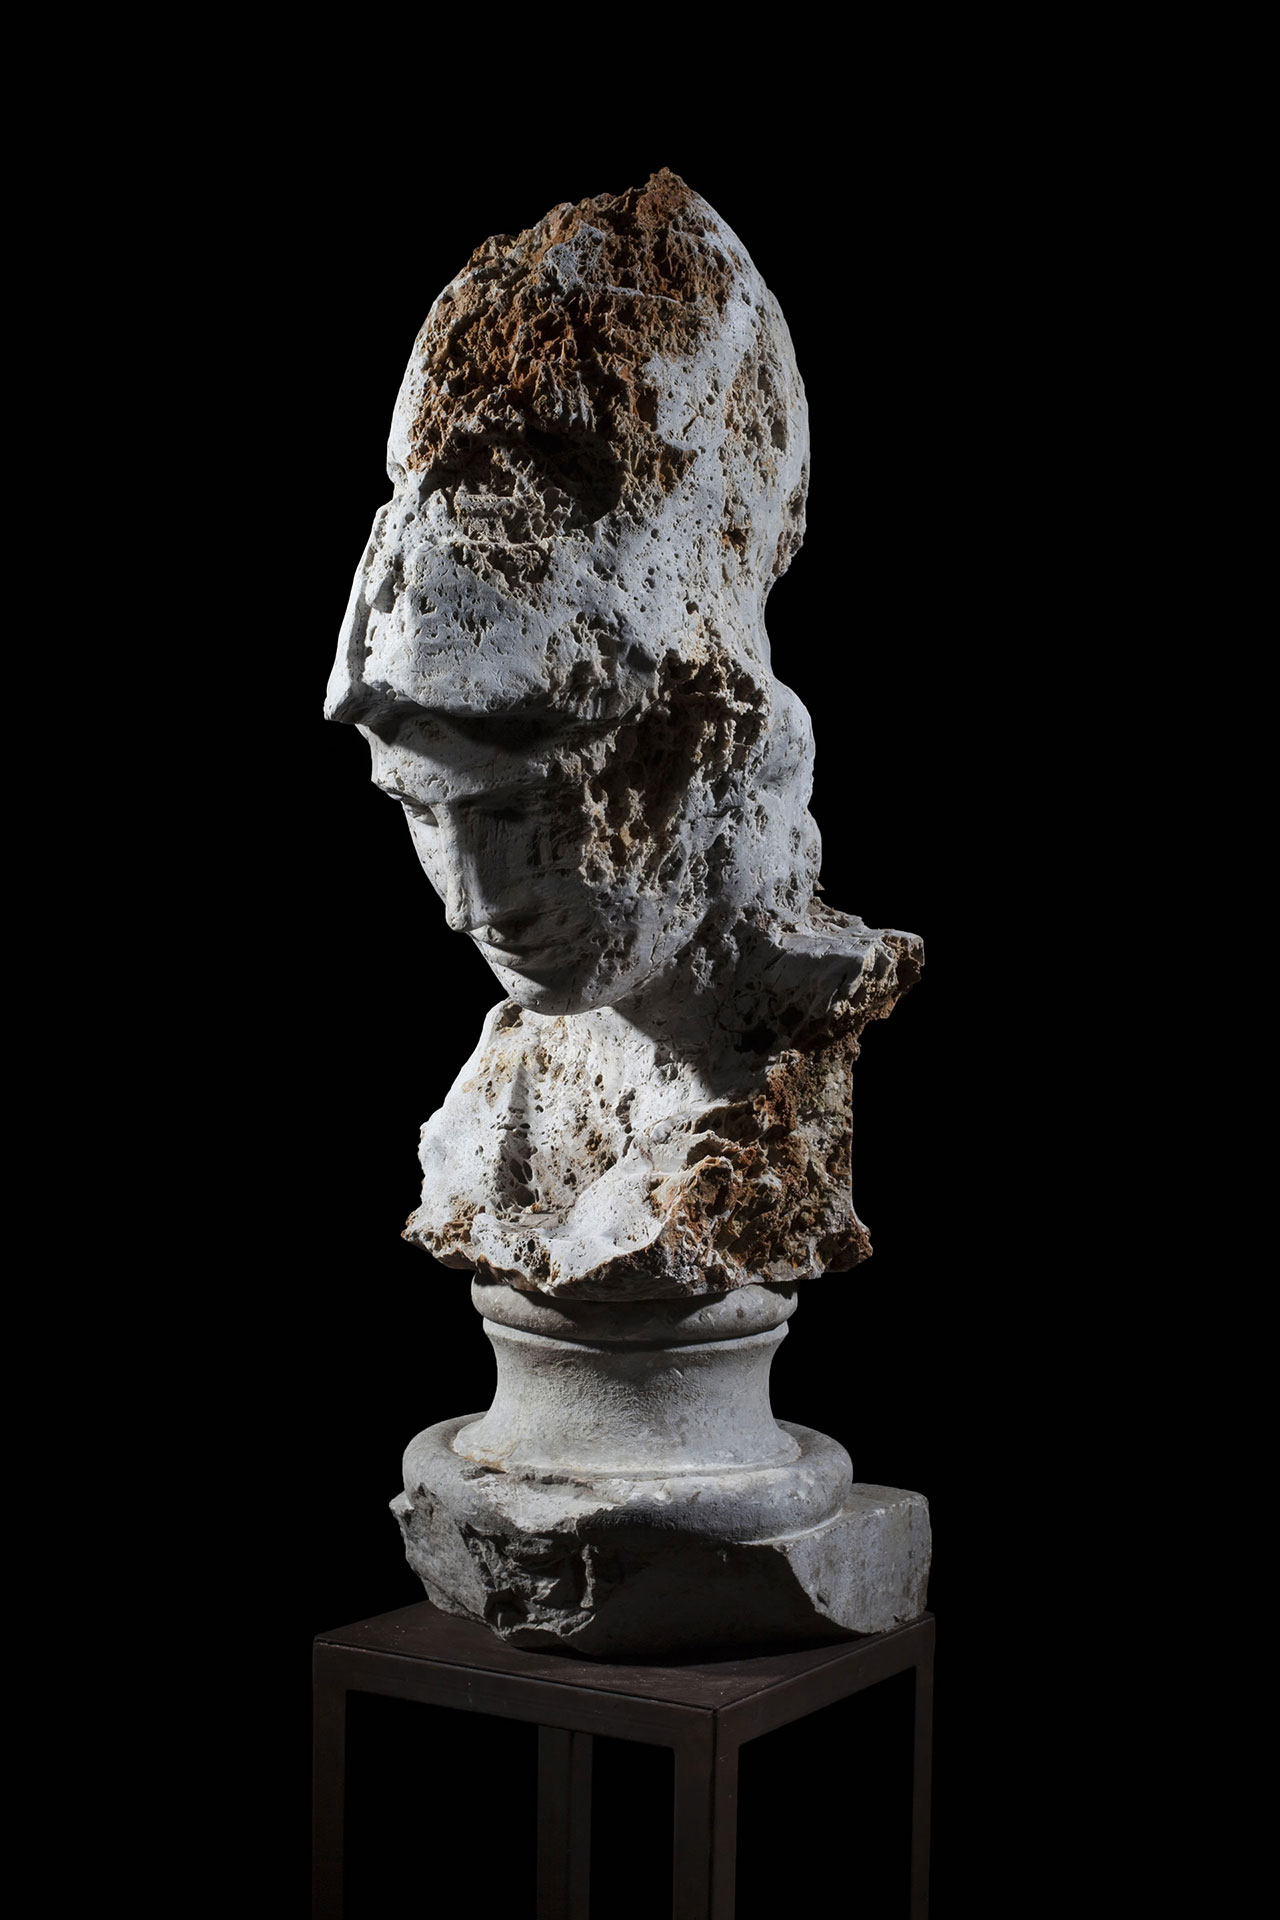 Massimiliano Pelletti, Atena, 2016. Rough stone and blu marble, 34 x 45 x 75h cm.